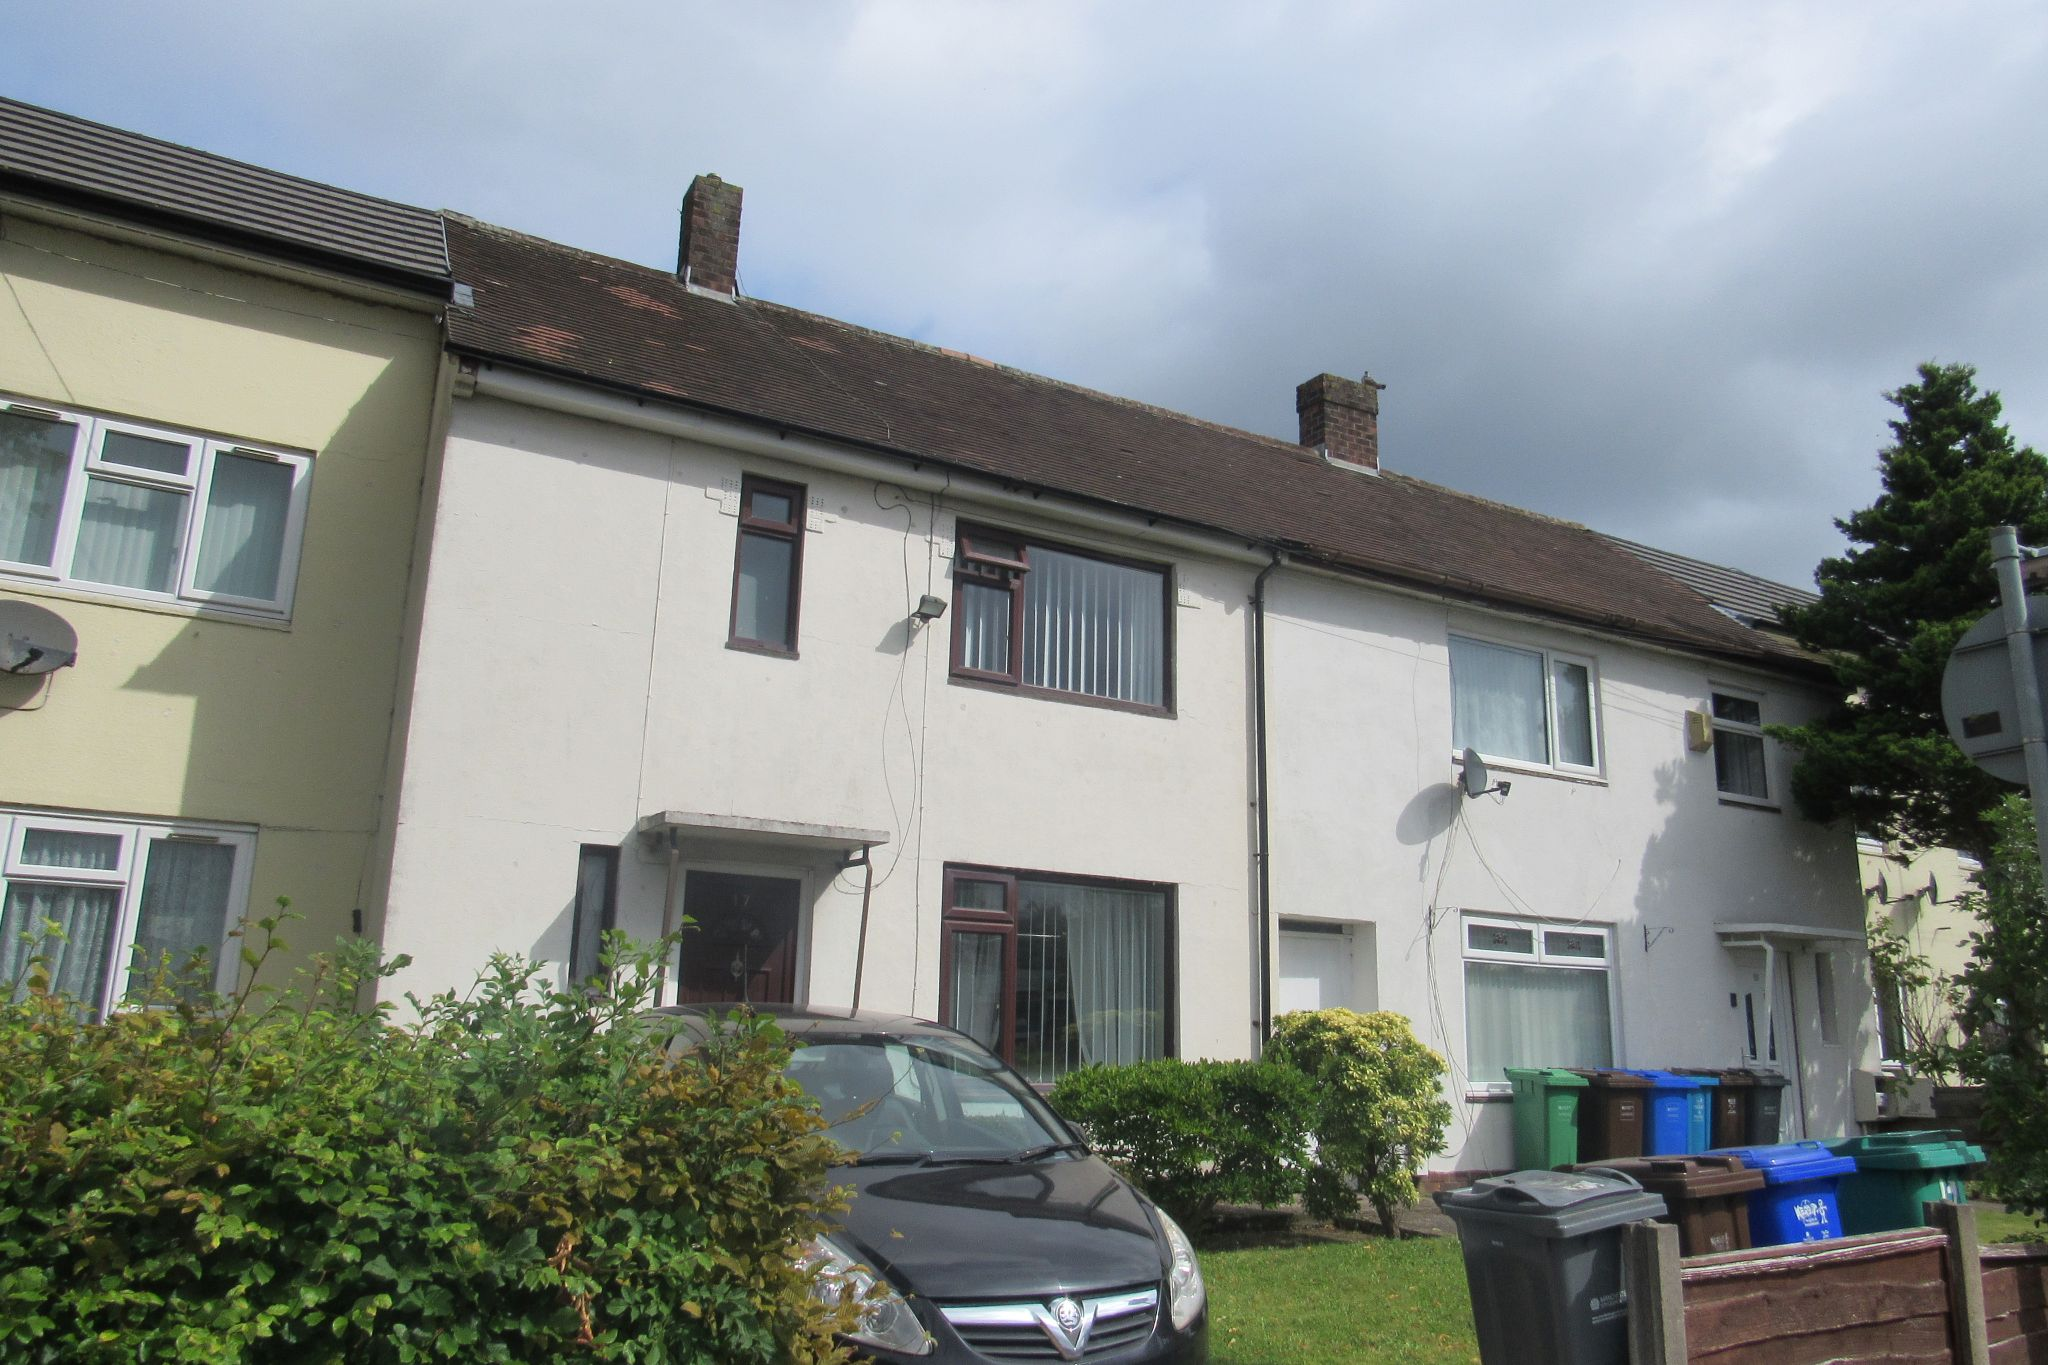 2 bedroom mid terraced house Under Offer in Manchester - Photograph 1.